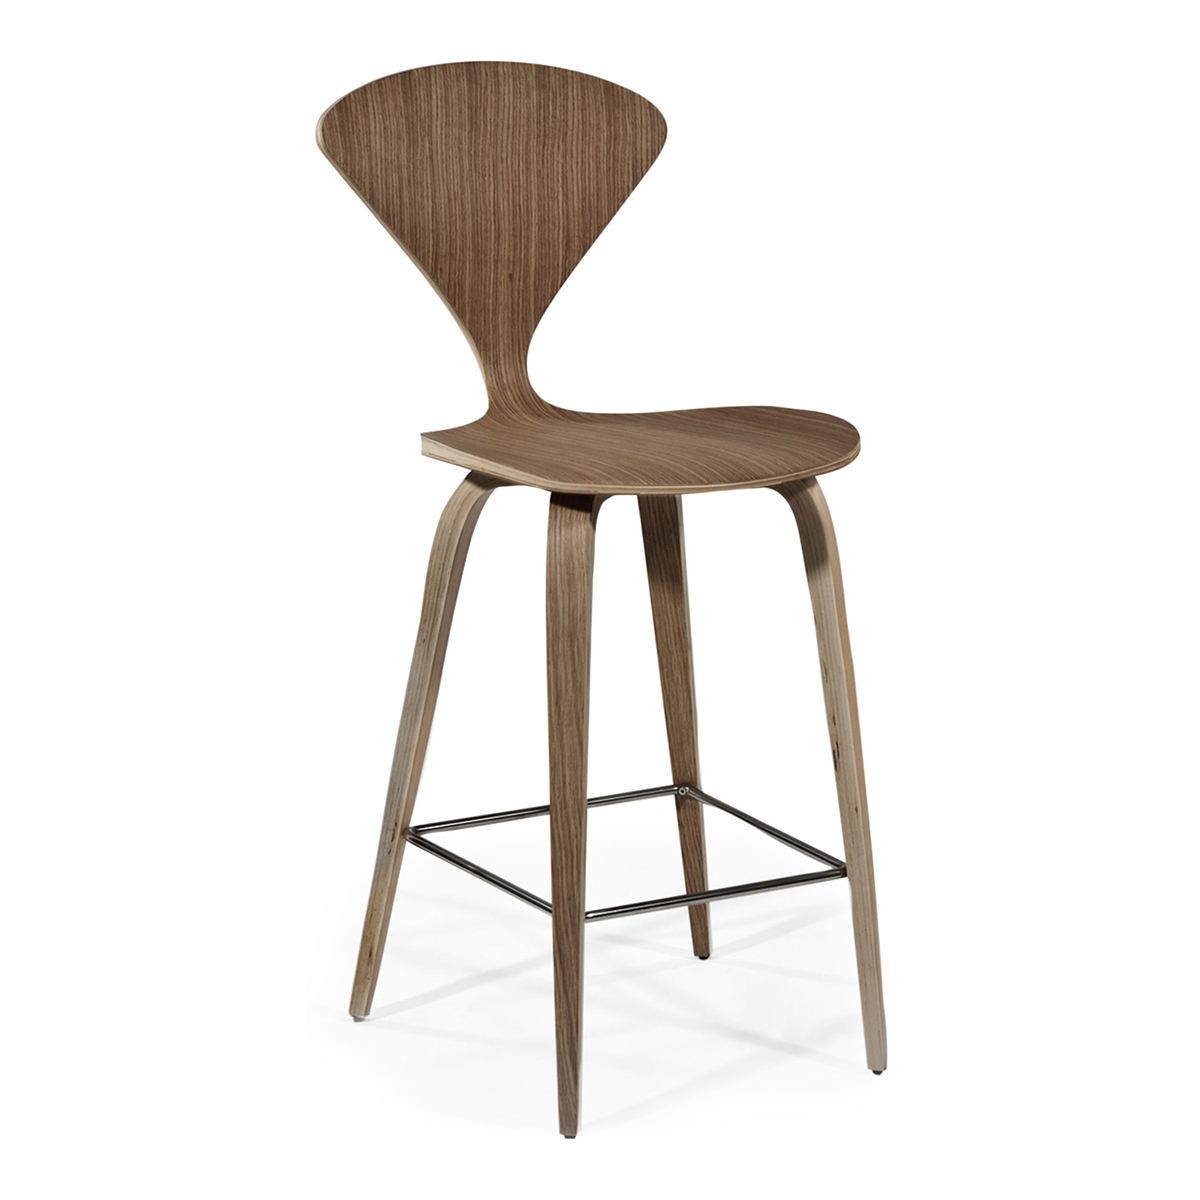 Admirable Norman Counter Stool Ibusinesslaw Wood Chair Design Ideas Ibusinesslaworg